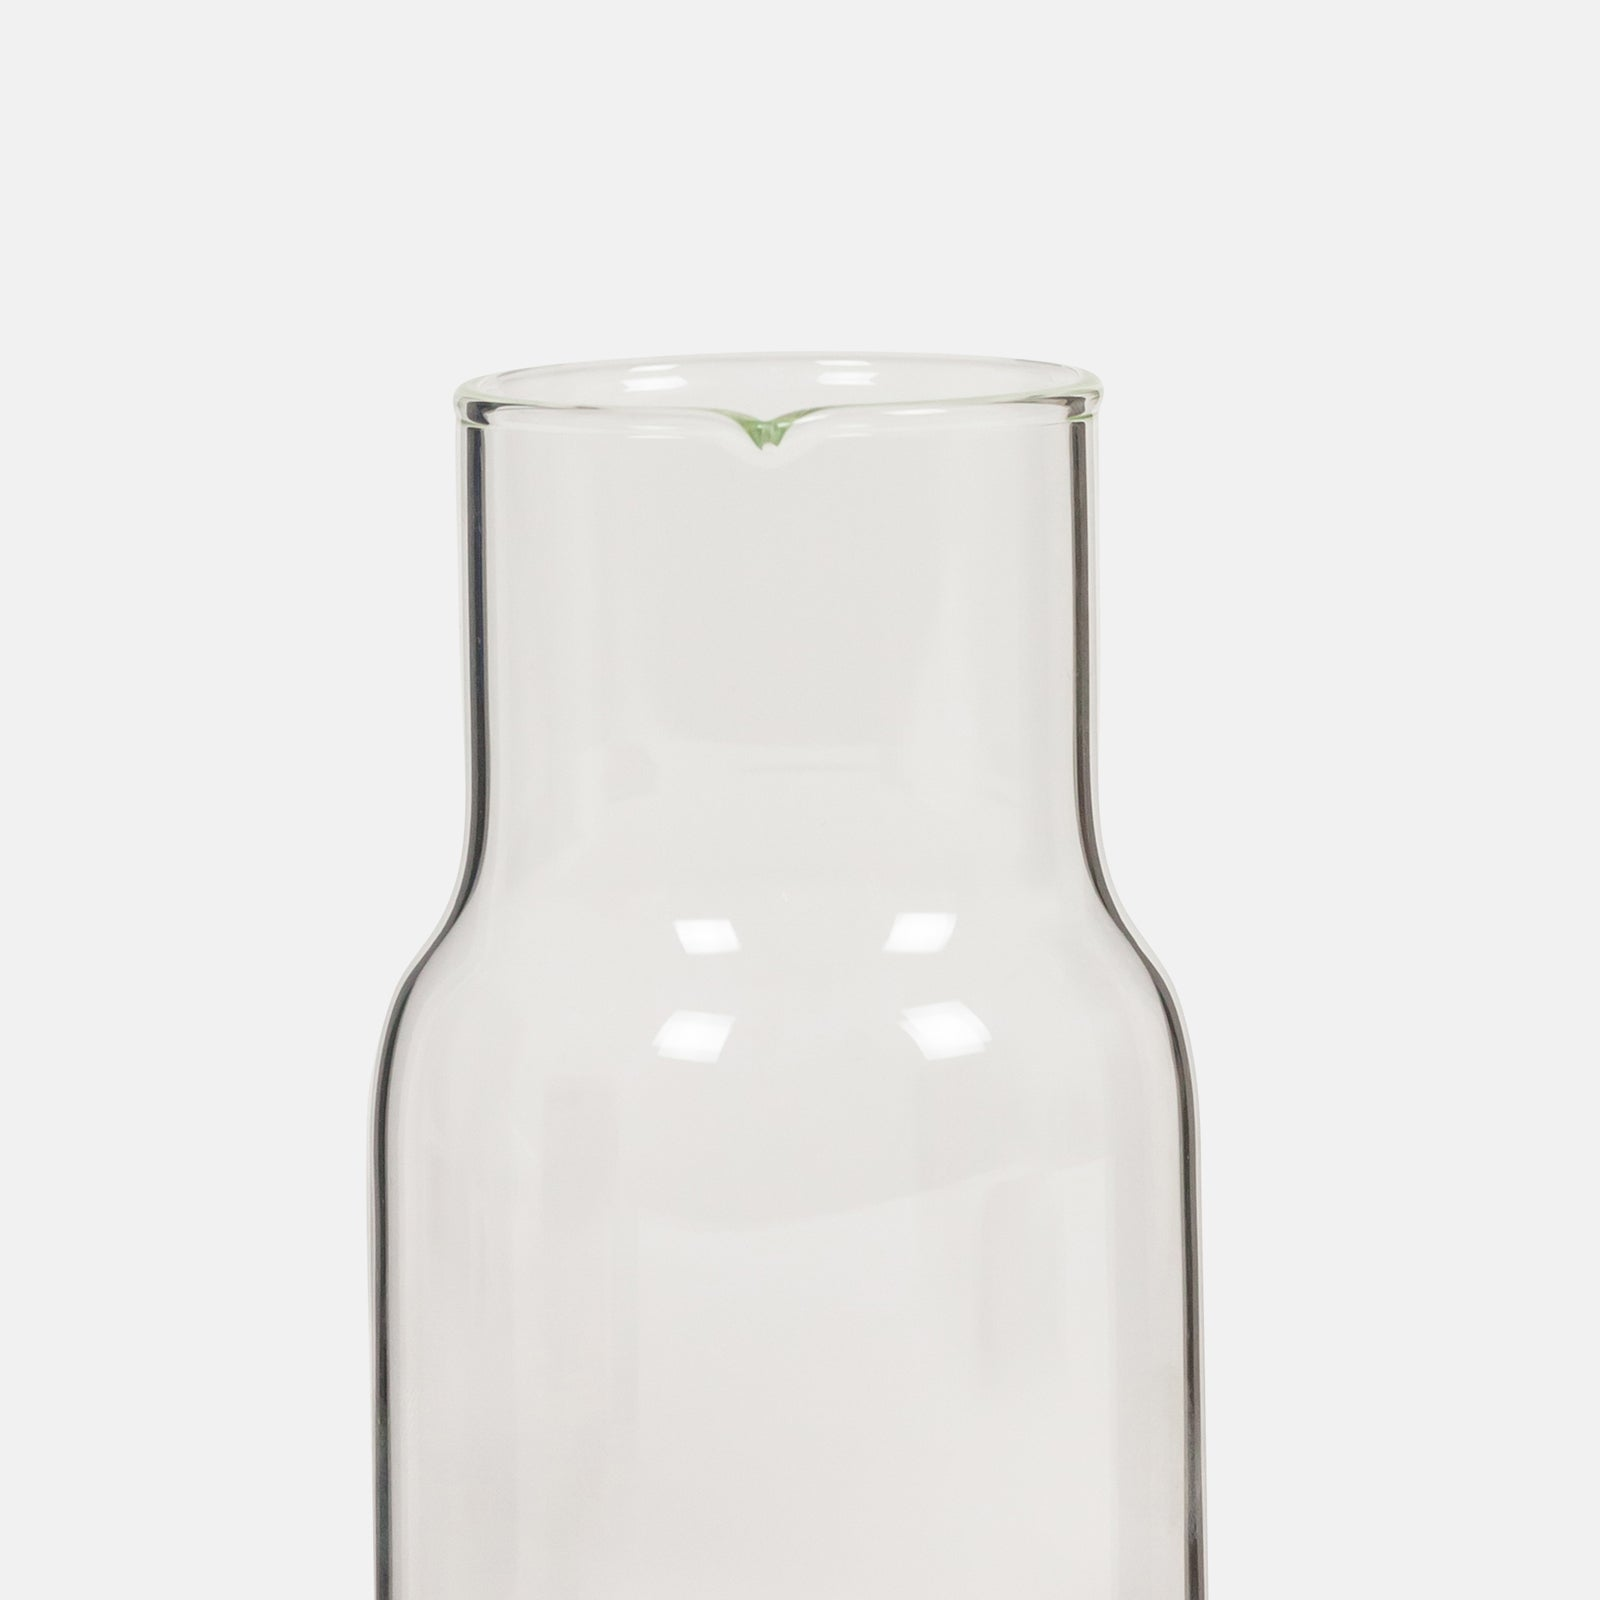 Tanjí Glass Night Carafe